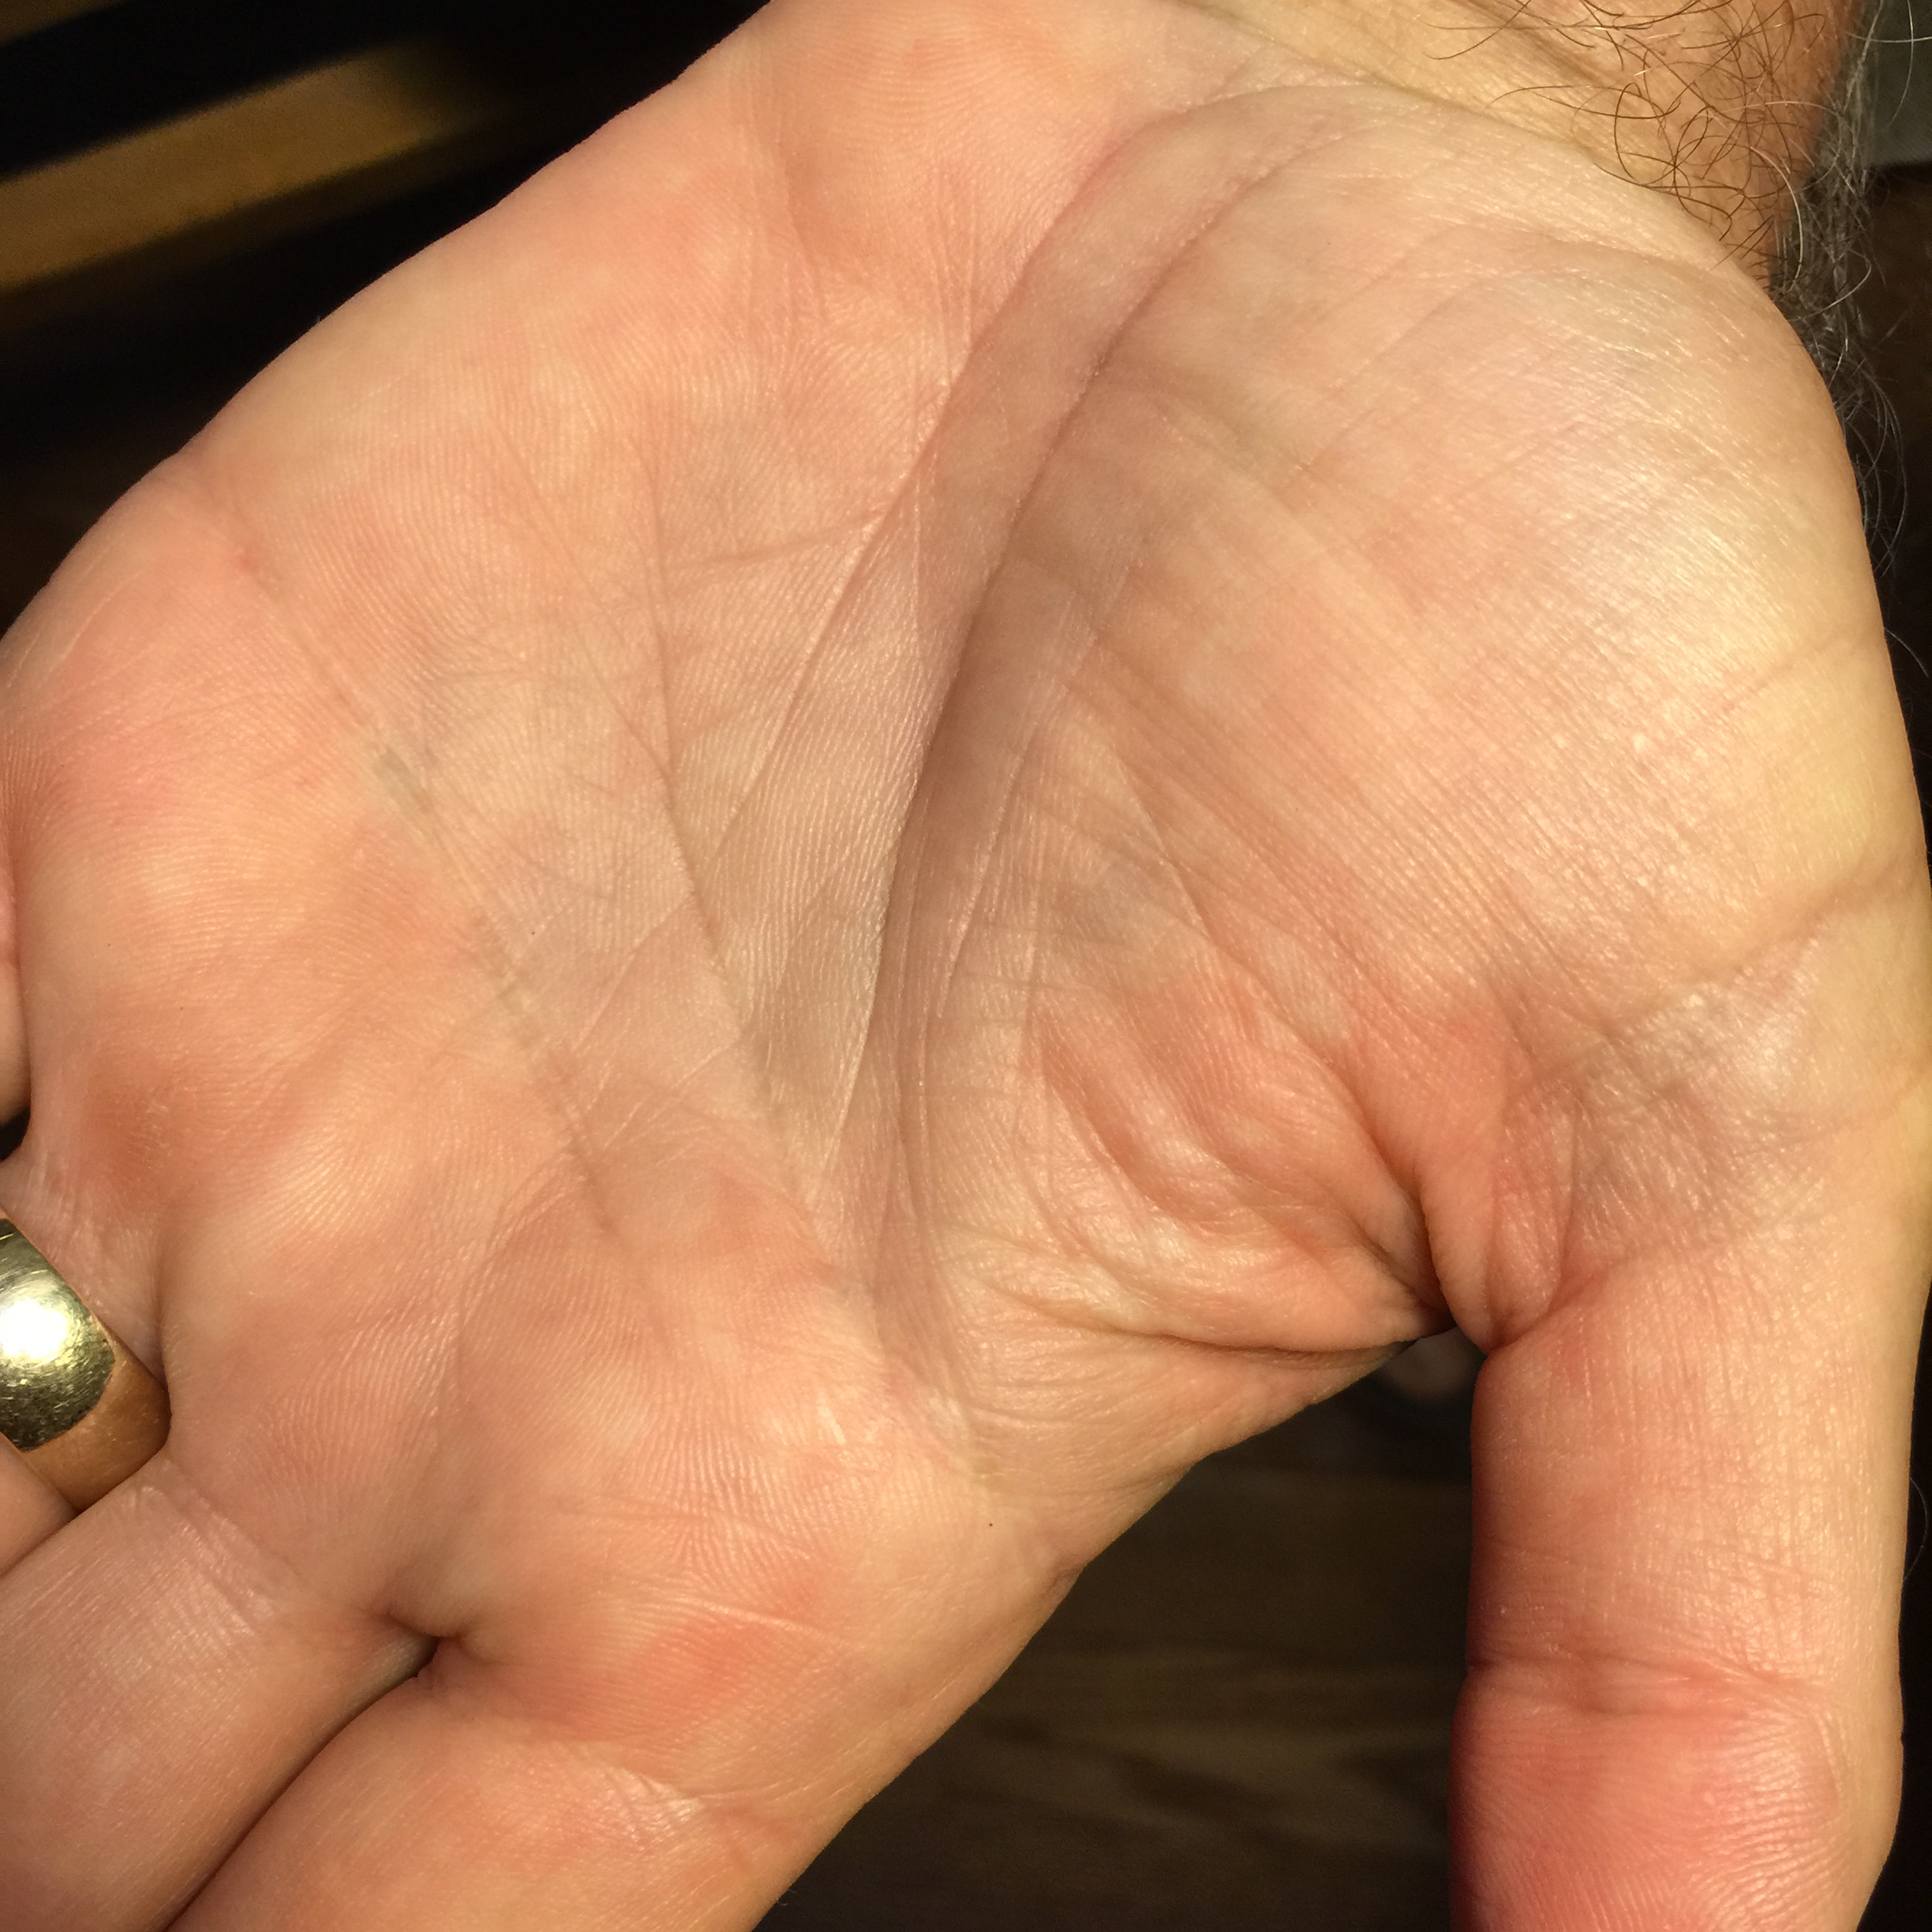 Ios Measure Around Hand With Thumb Extended